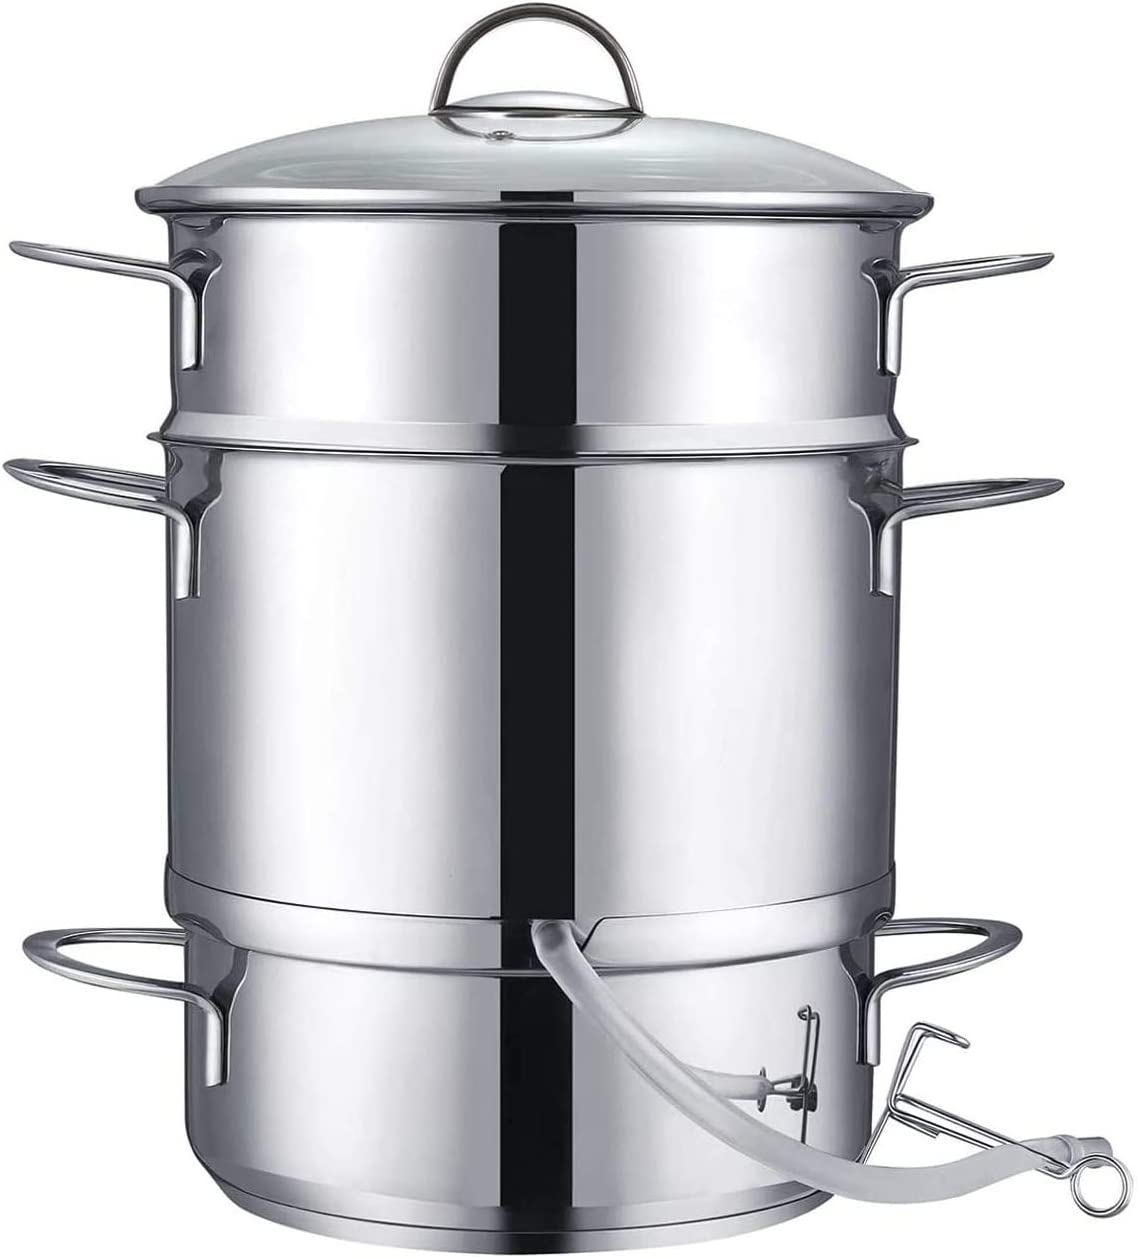 Fracoda 26cm 11-Quart Juicer Steamer,Stainless Steel Fruit Vegetables Steamer for Food With Glass Lid Hose With Clamp Loop Handles,Perfect Home Kitchen Cookware